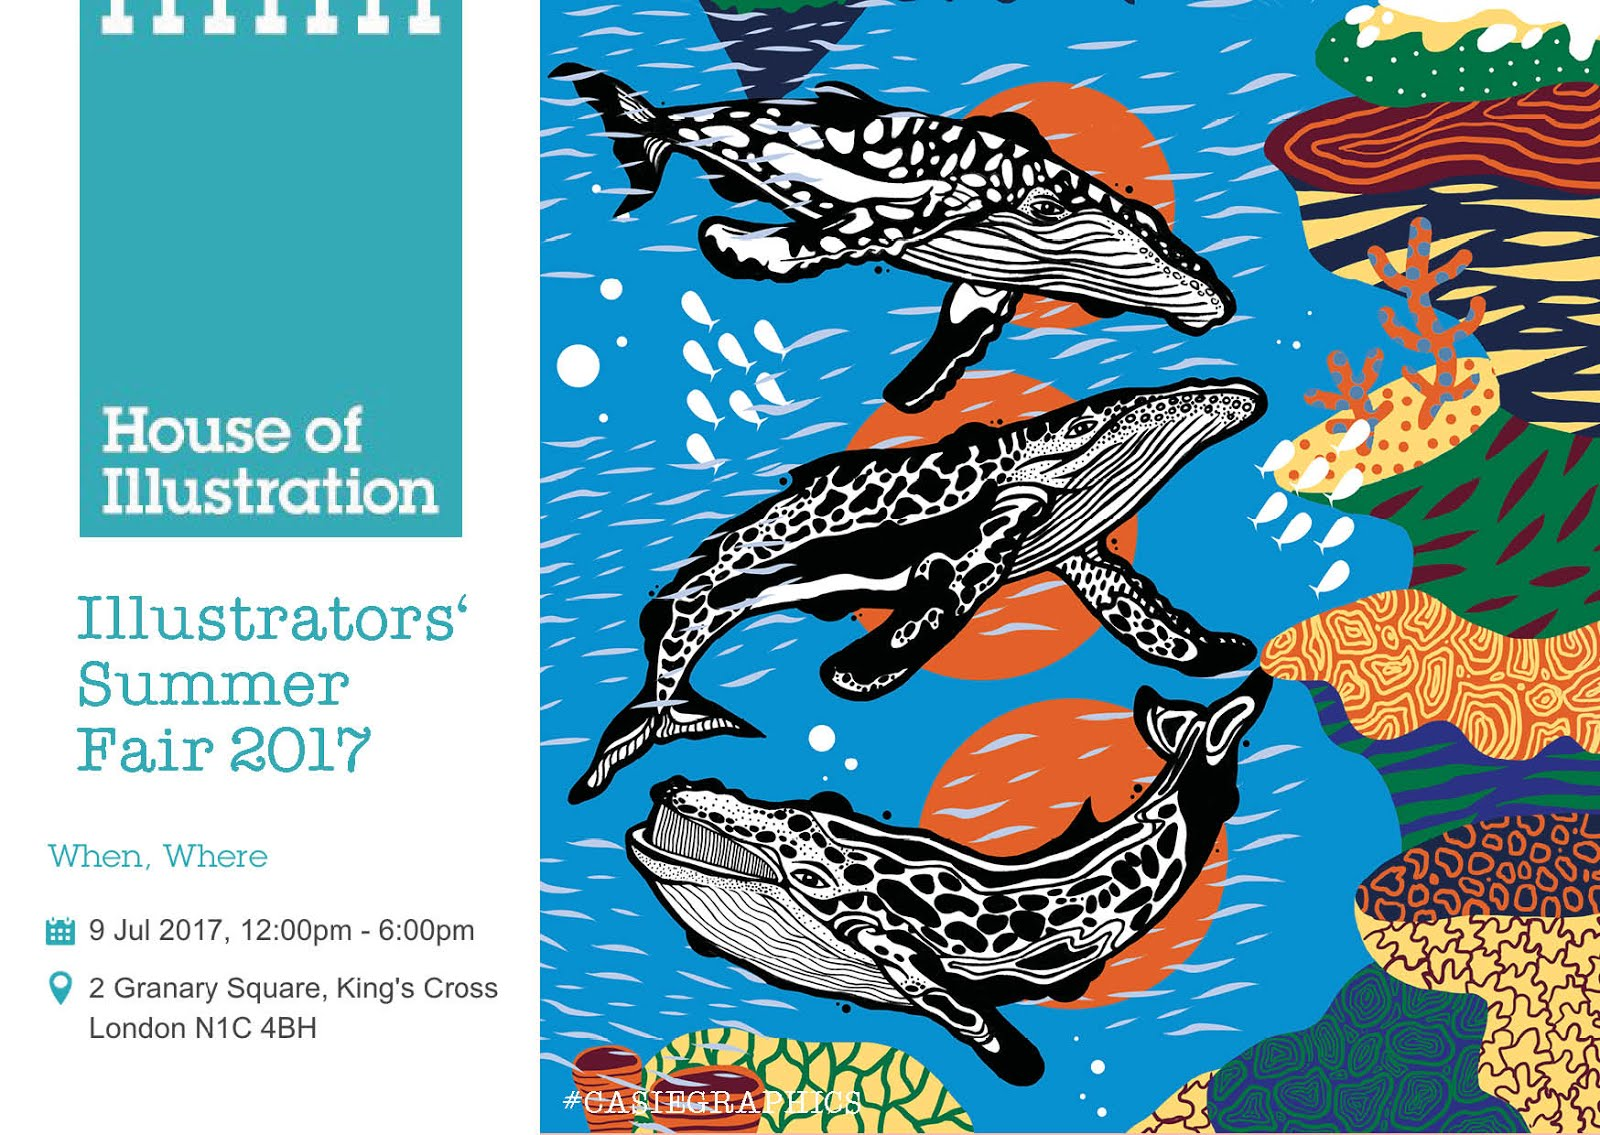 Illustrators' Summer Fair London